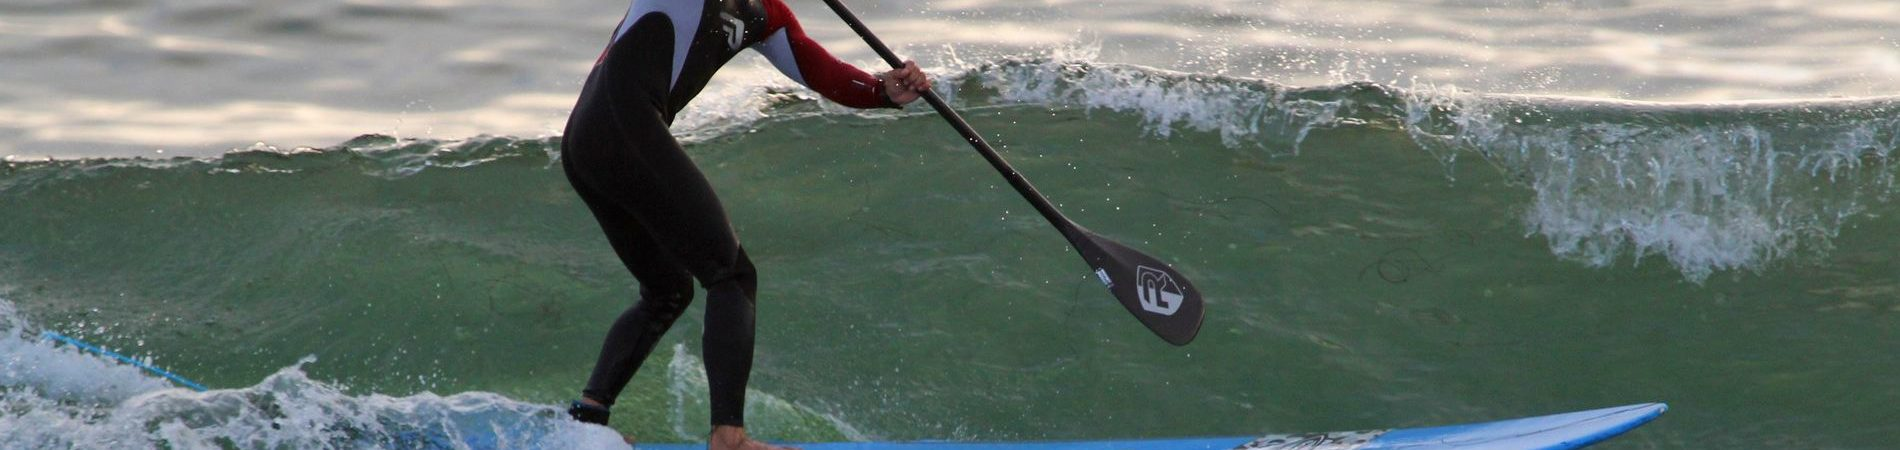 standup paddle board lessons san diego